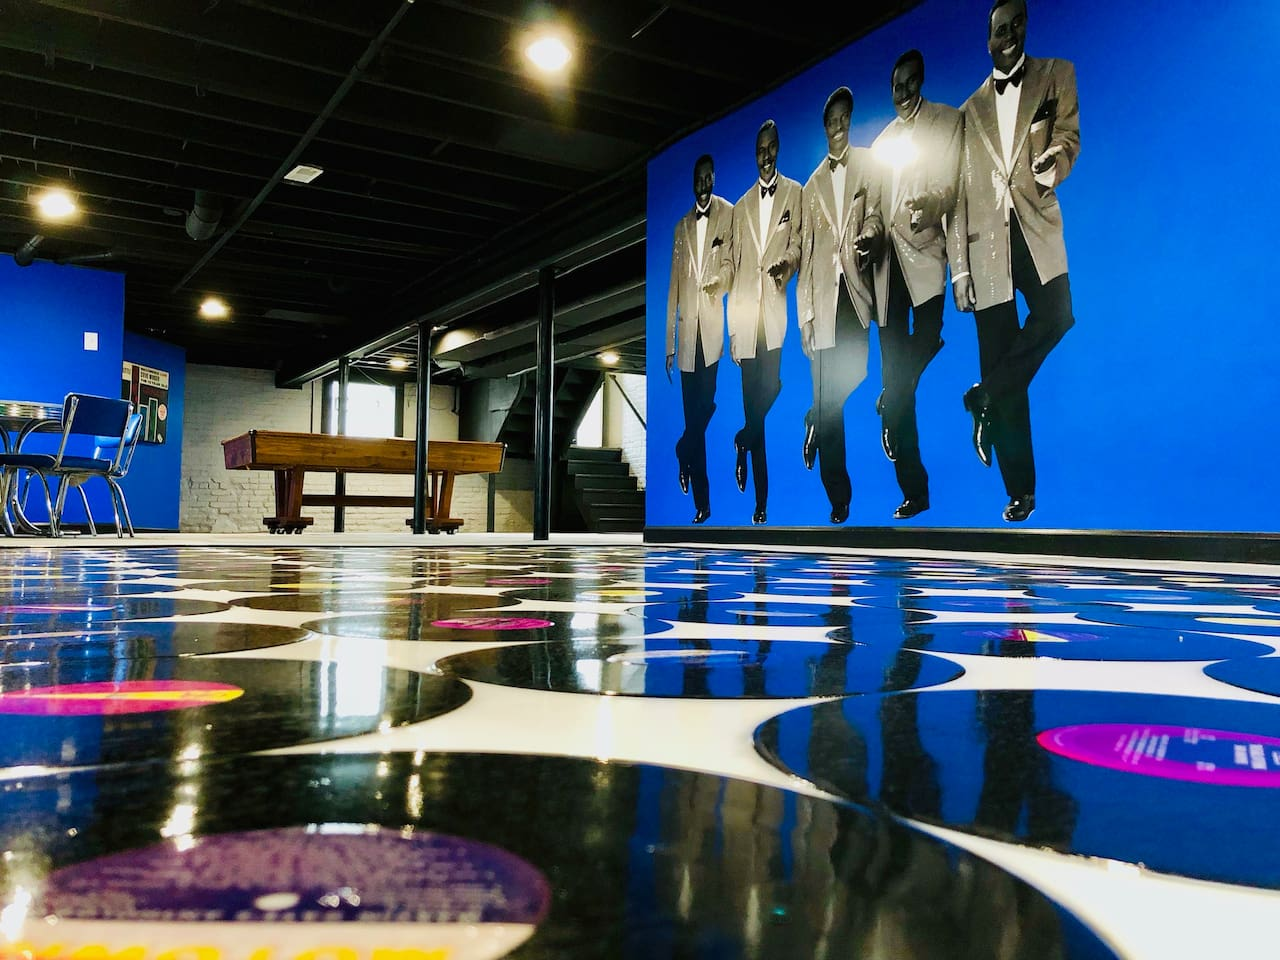 The basement dance floor is comprised of original Motown records ... dance the night away while the restored classic jukebox spins the classics!